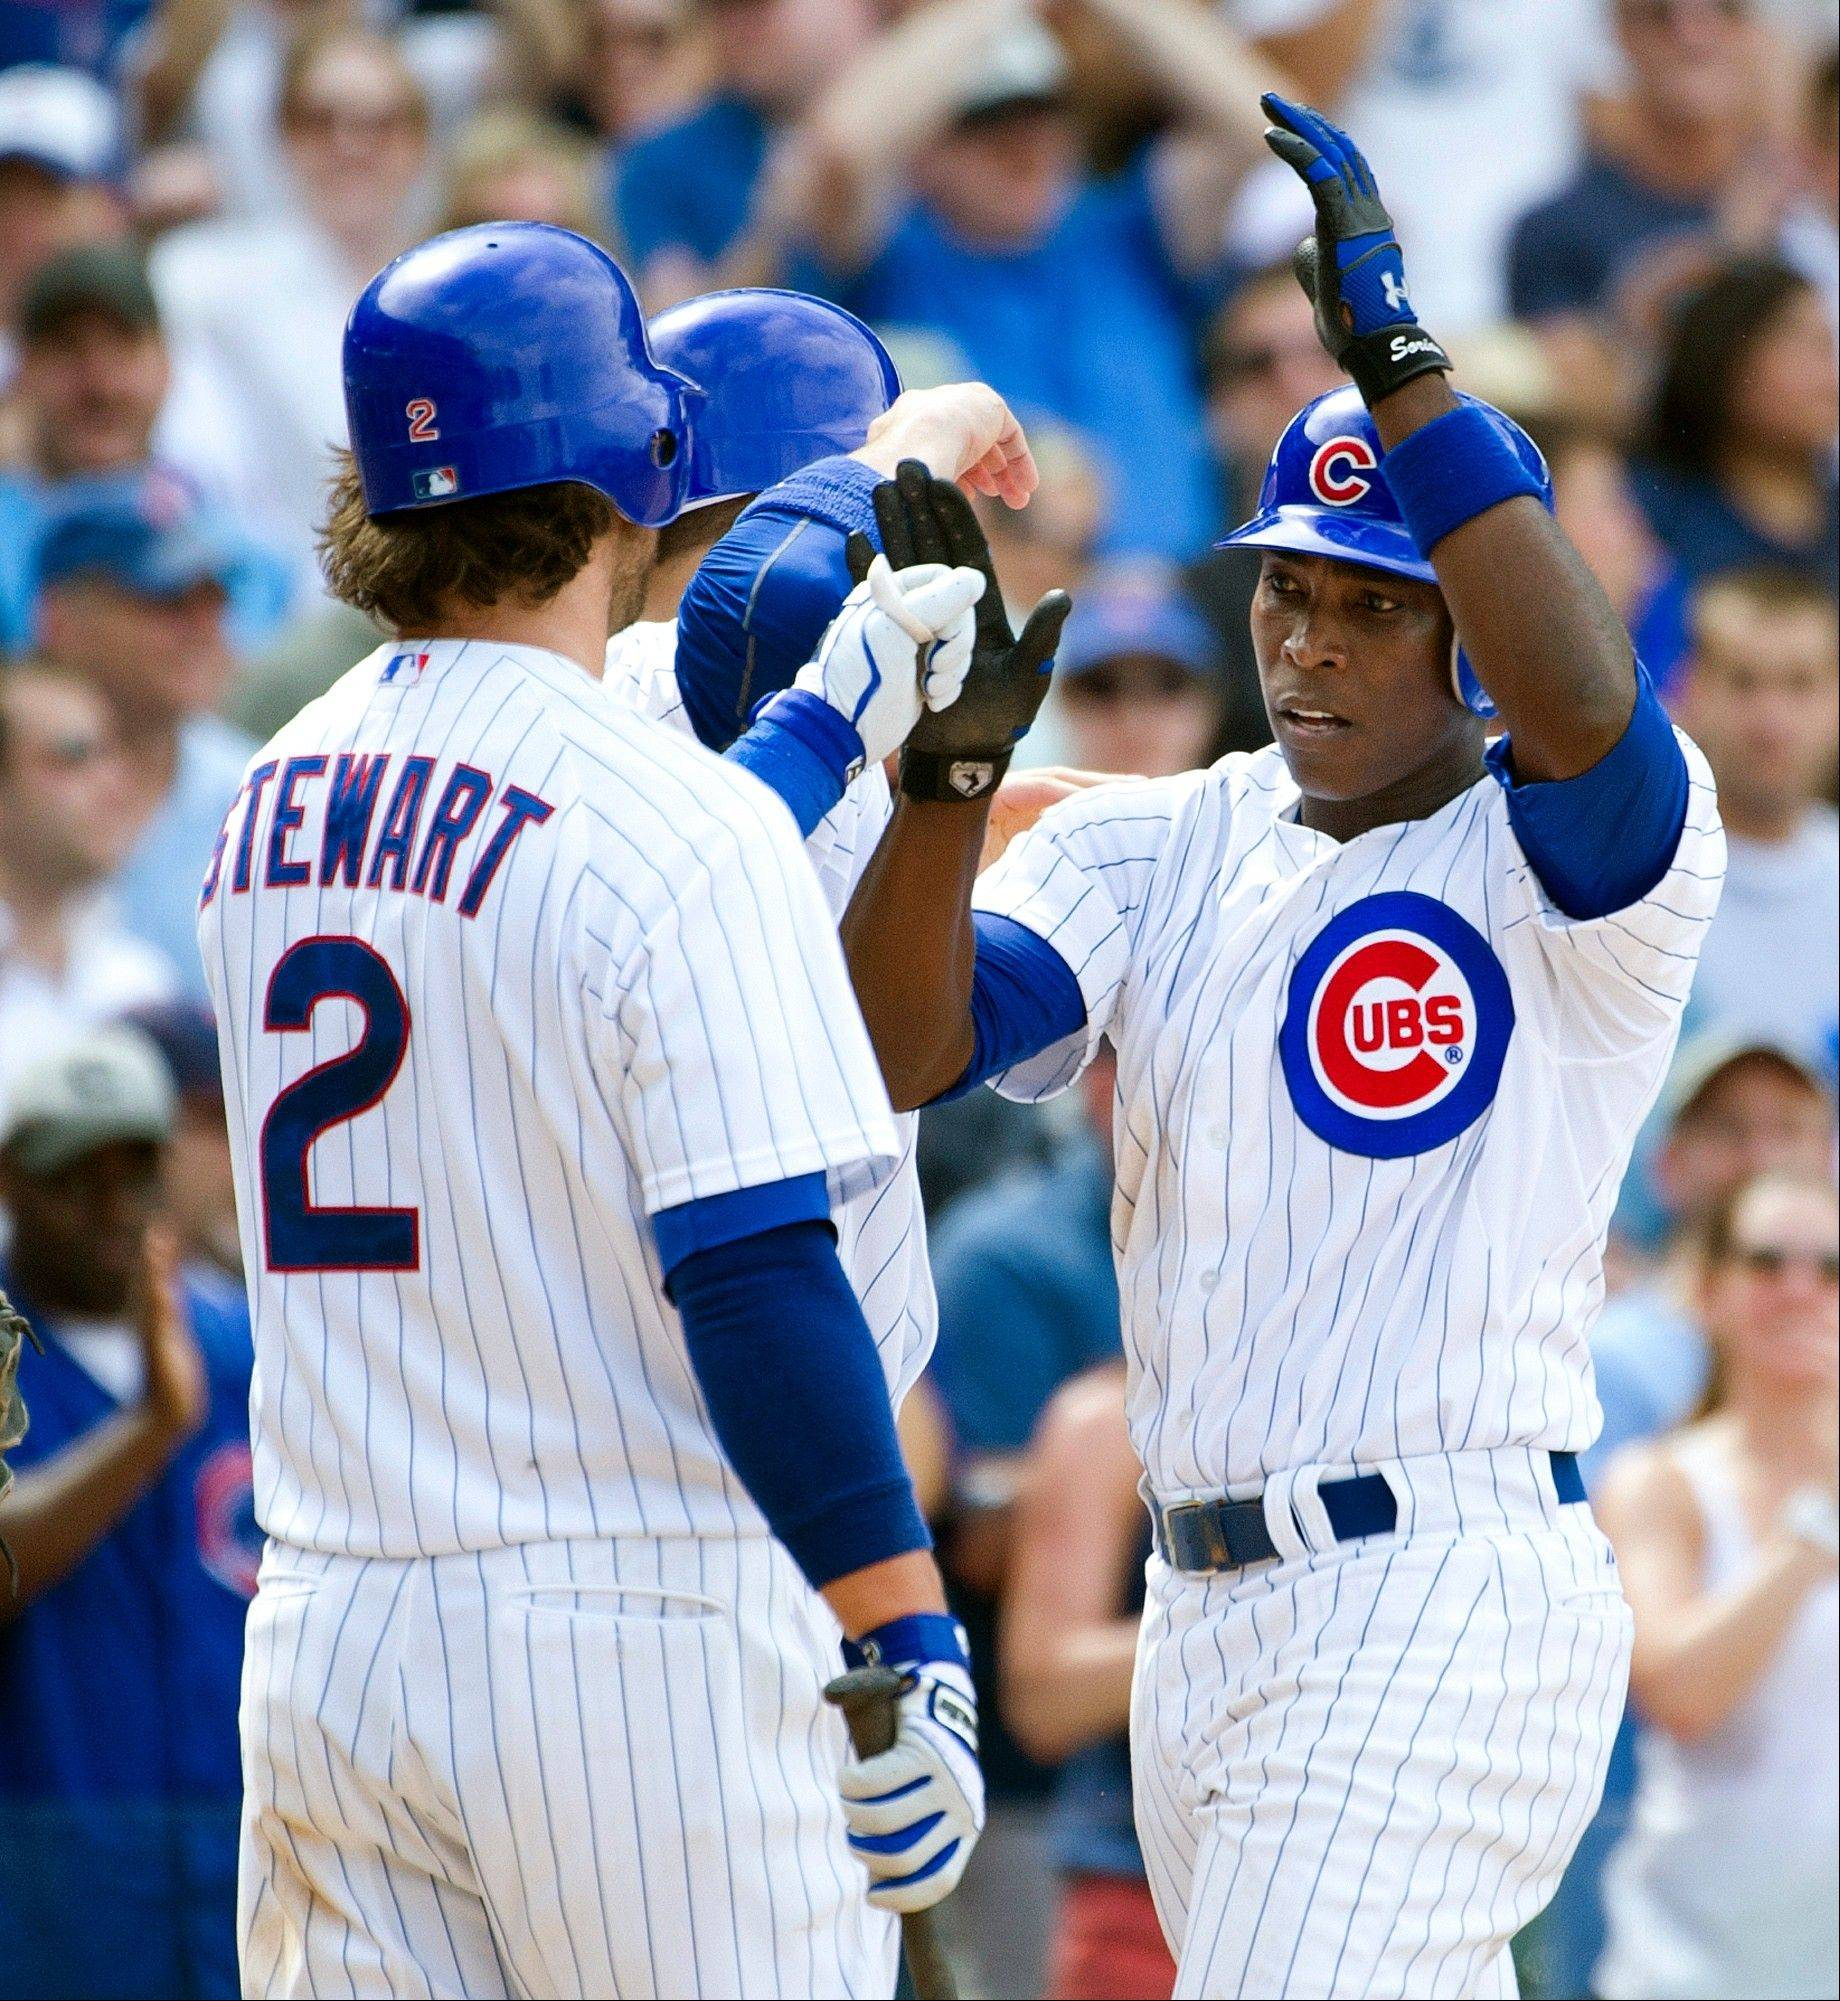 From left, Cubs players Ian Stewart and Bryan LaHair congratulate Alfonso Soriano after Soriano hit a two-run home run to score LaHair during Monday's sixth inning at Wrigley Field.